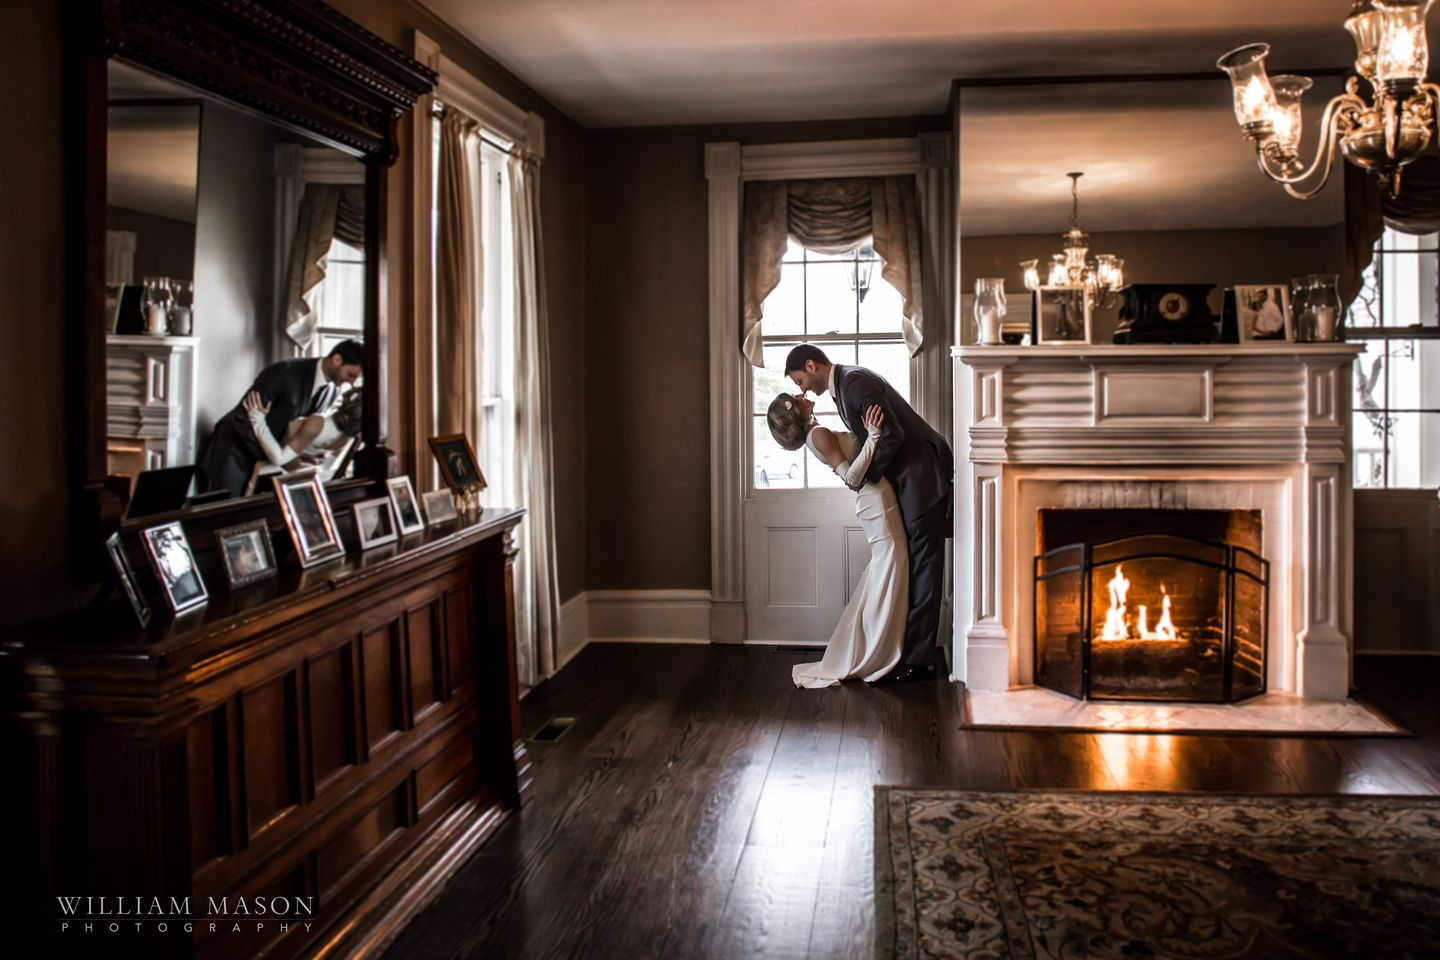 davids country inn bride and groom new york wedding photography by